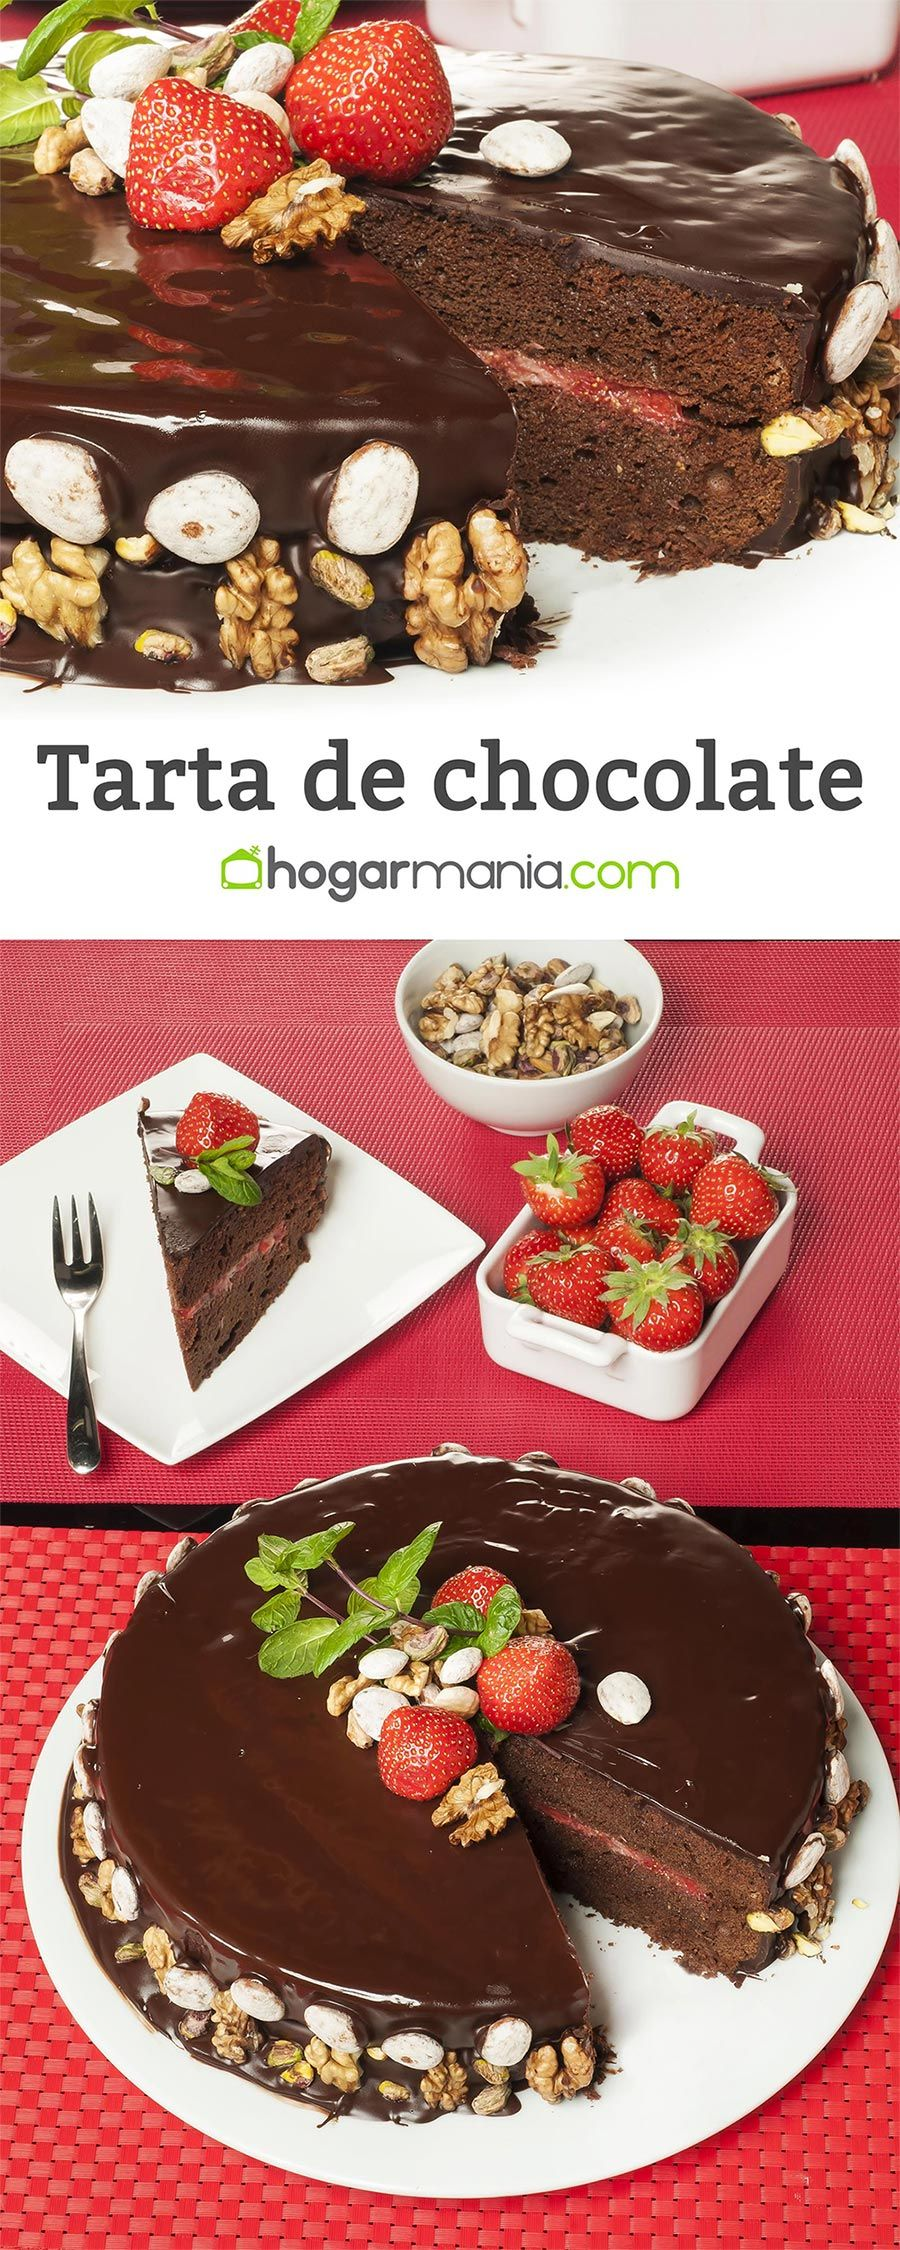 Tarta de chocolate 100%